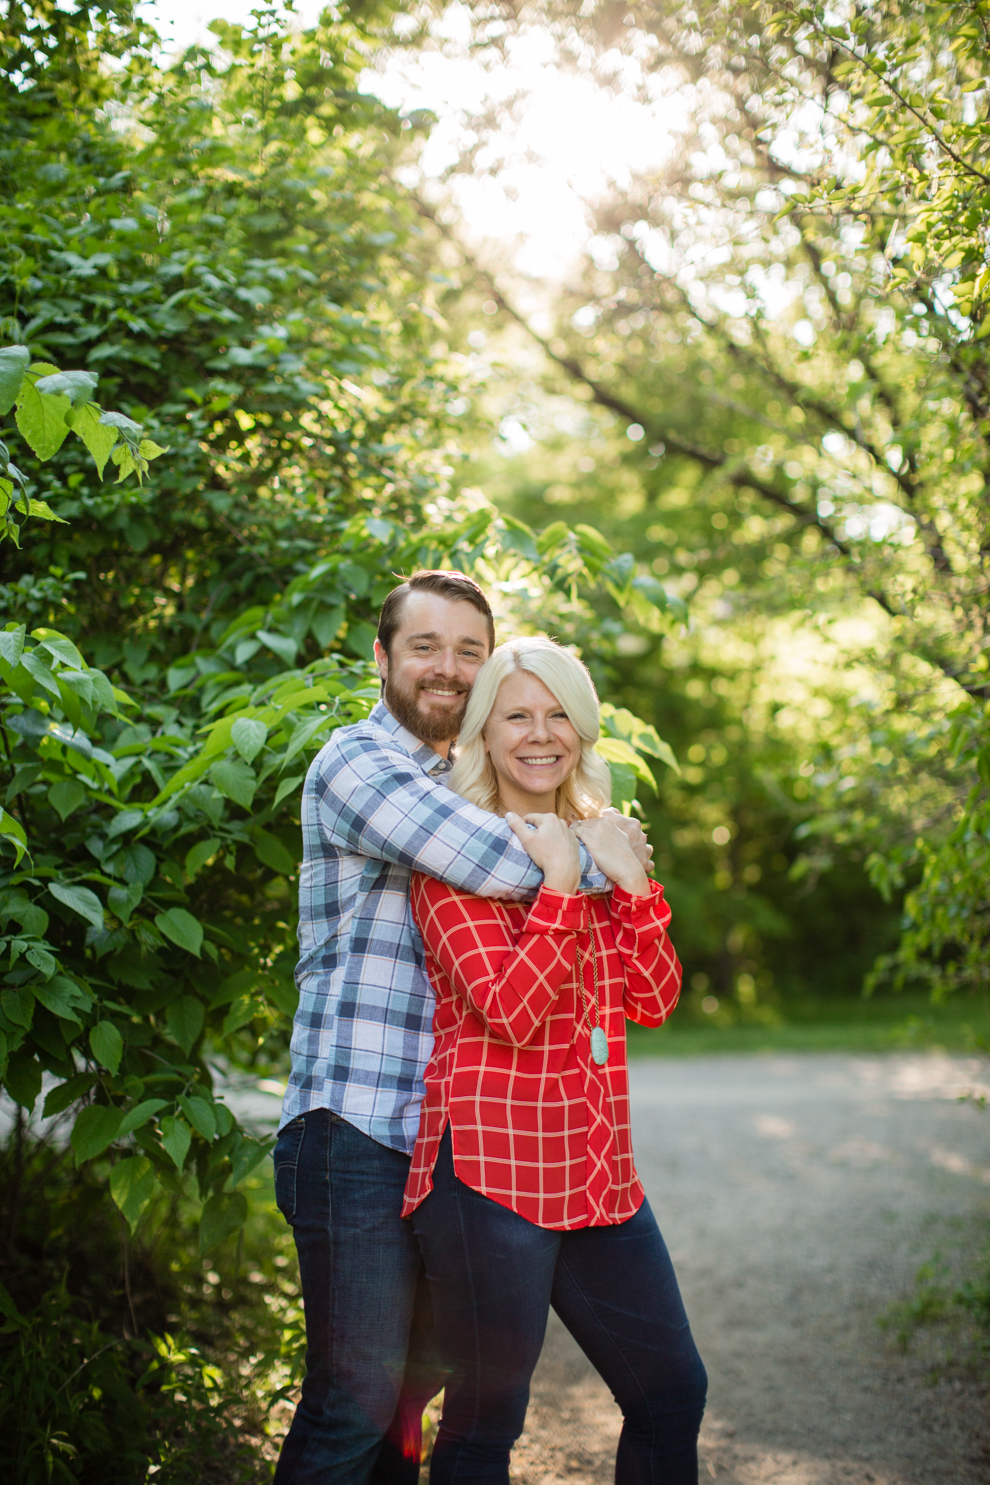 052116_Ryan_Liz_Engagement_015